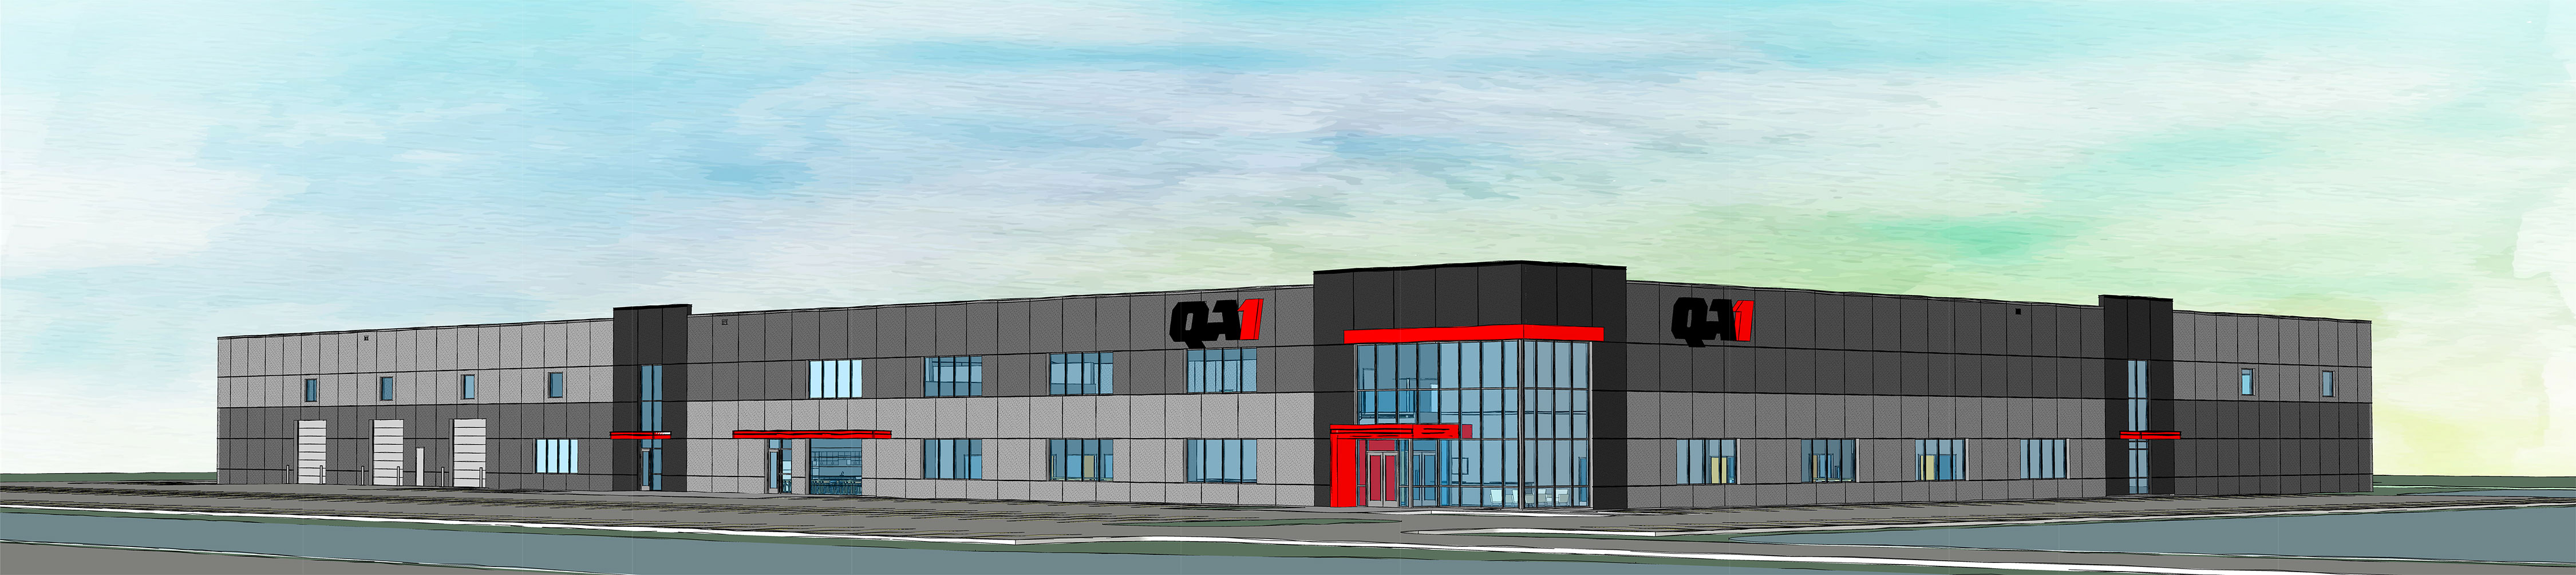 A rendering of what the new QA1 building may look like when complete